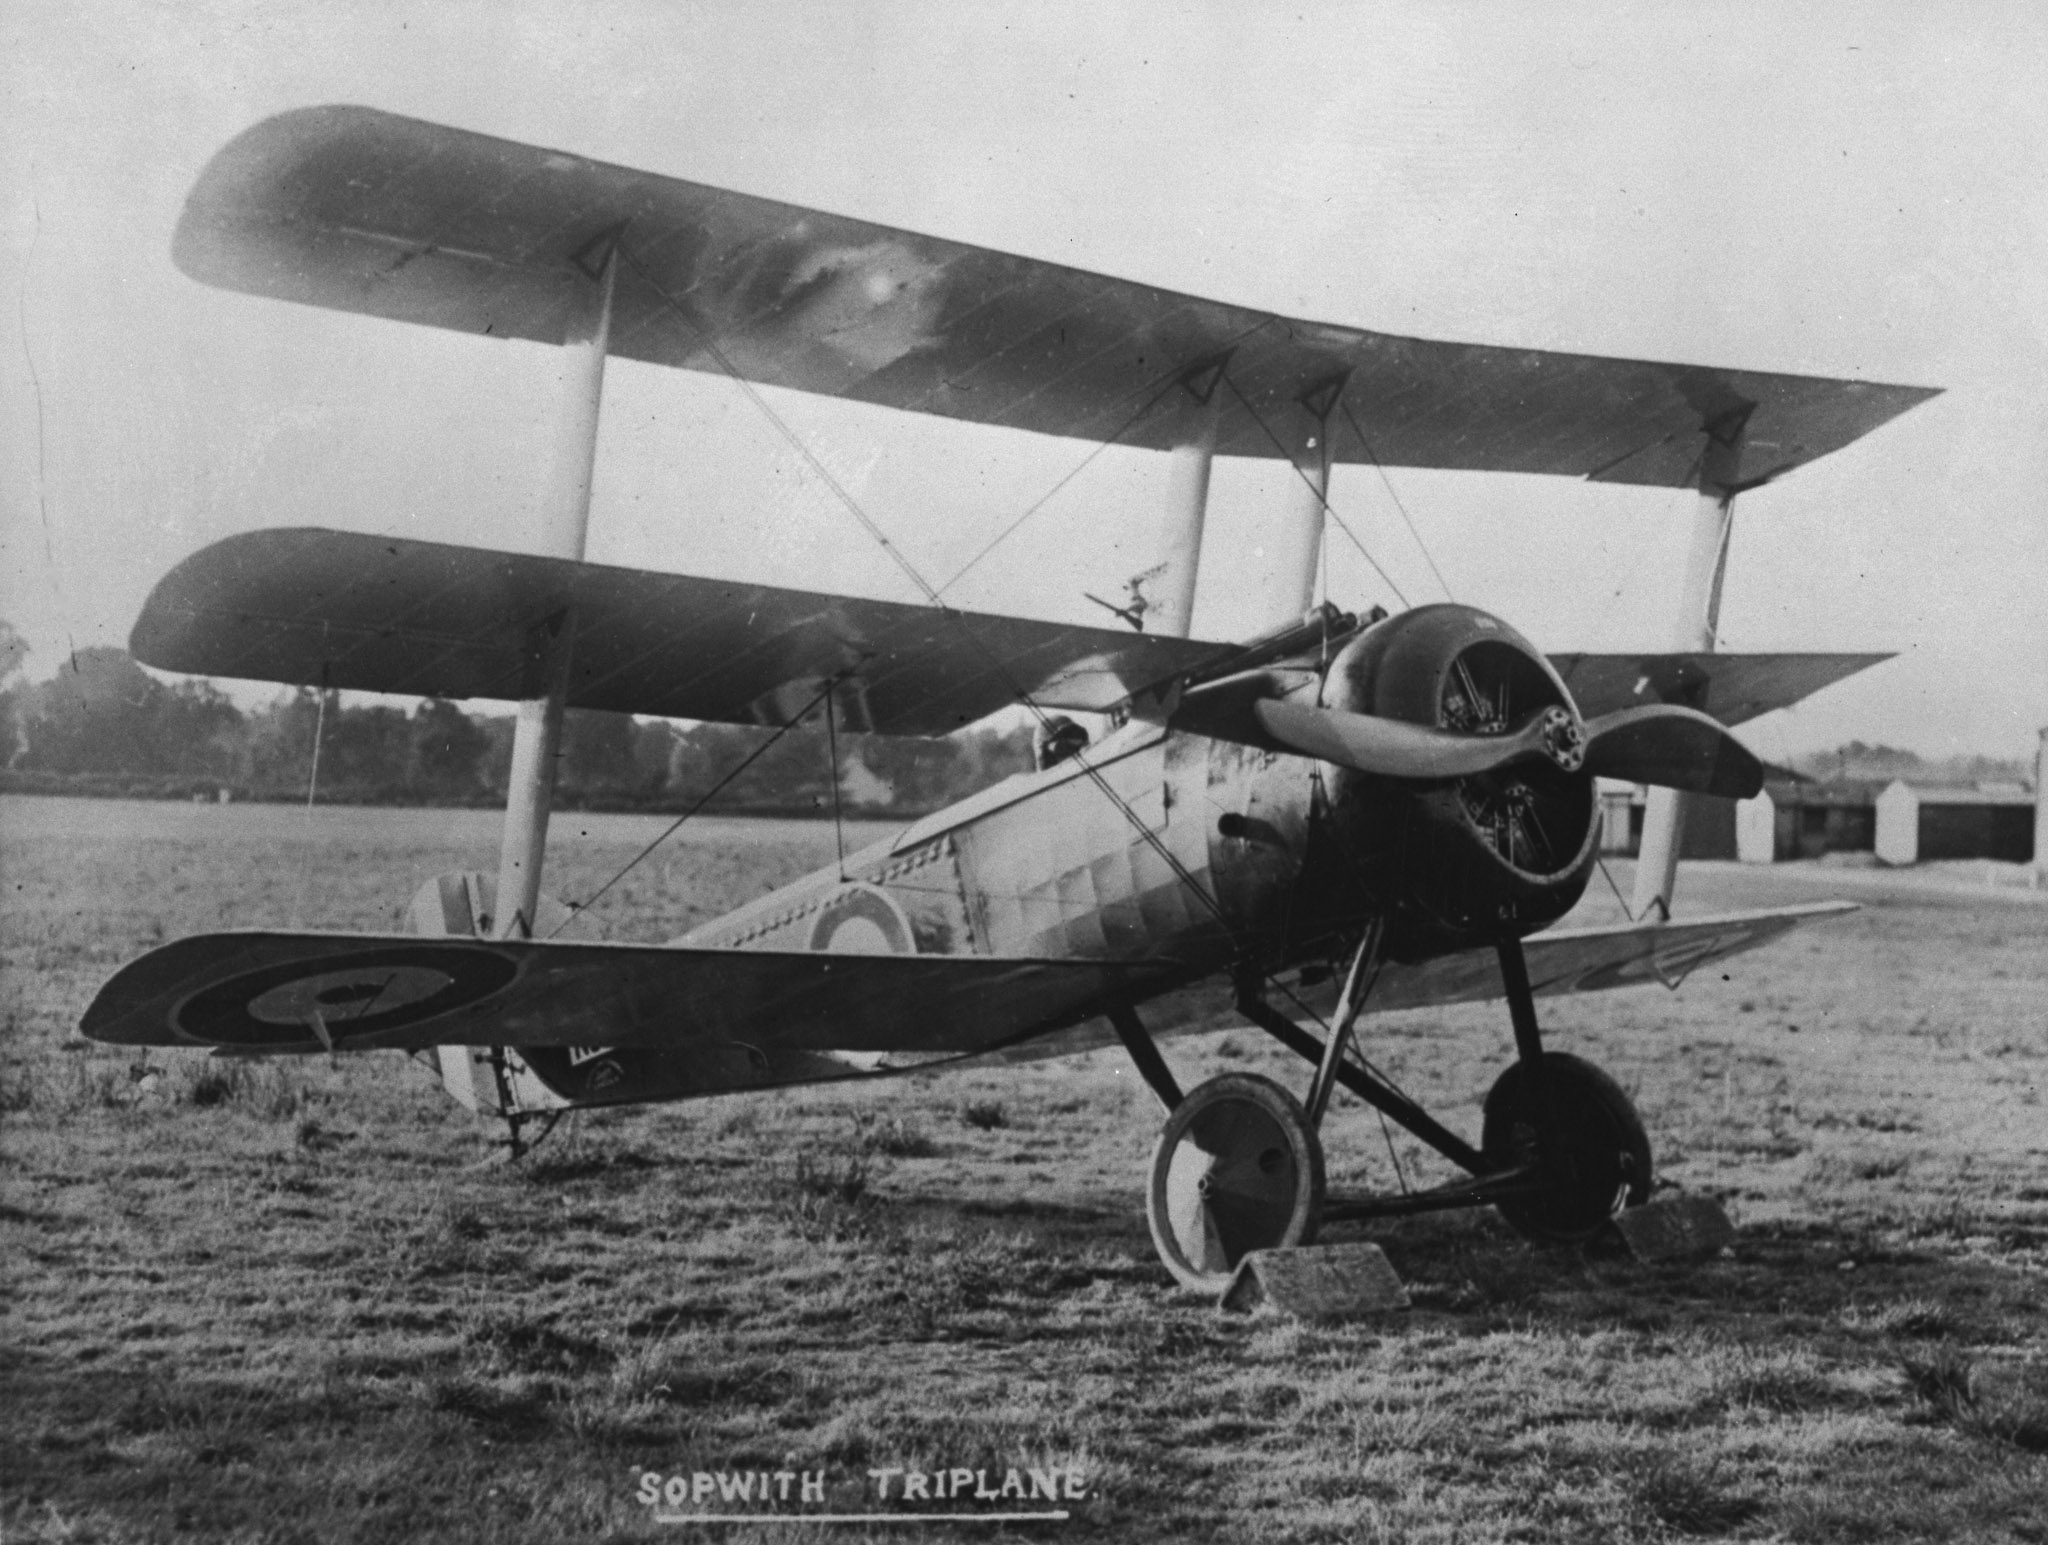 Un triplan Sopwith. Les 1er, 8e et 10e Escadrons du Royal Naval Air Service, équipés de triplans Sopwith, ont été mis temporairement à la disposition du Royal Flying Corps pendant la période qui a précédé la bataille de la crête de Vimy. PHOTO : Archives du MDN, AH-493